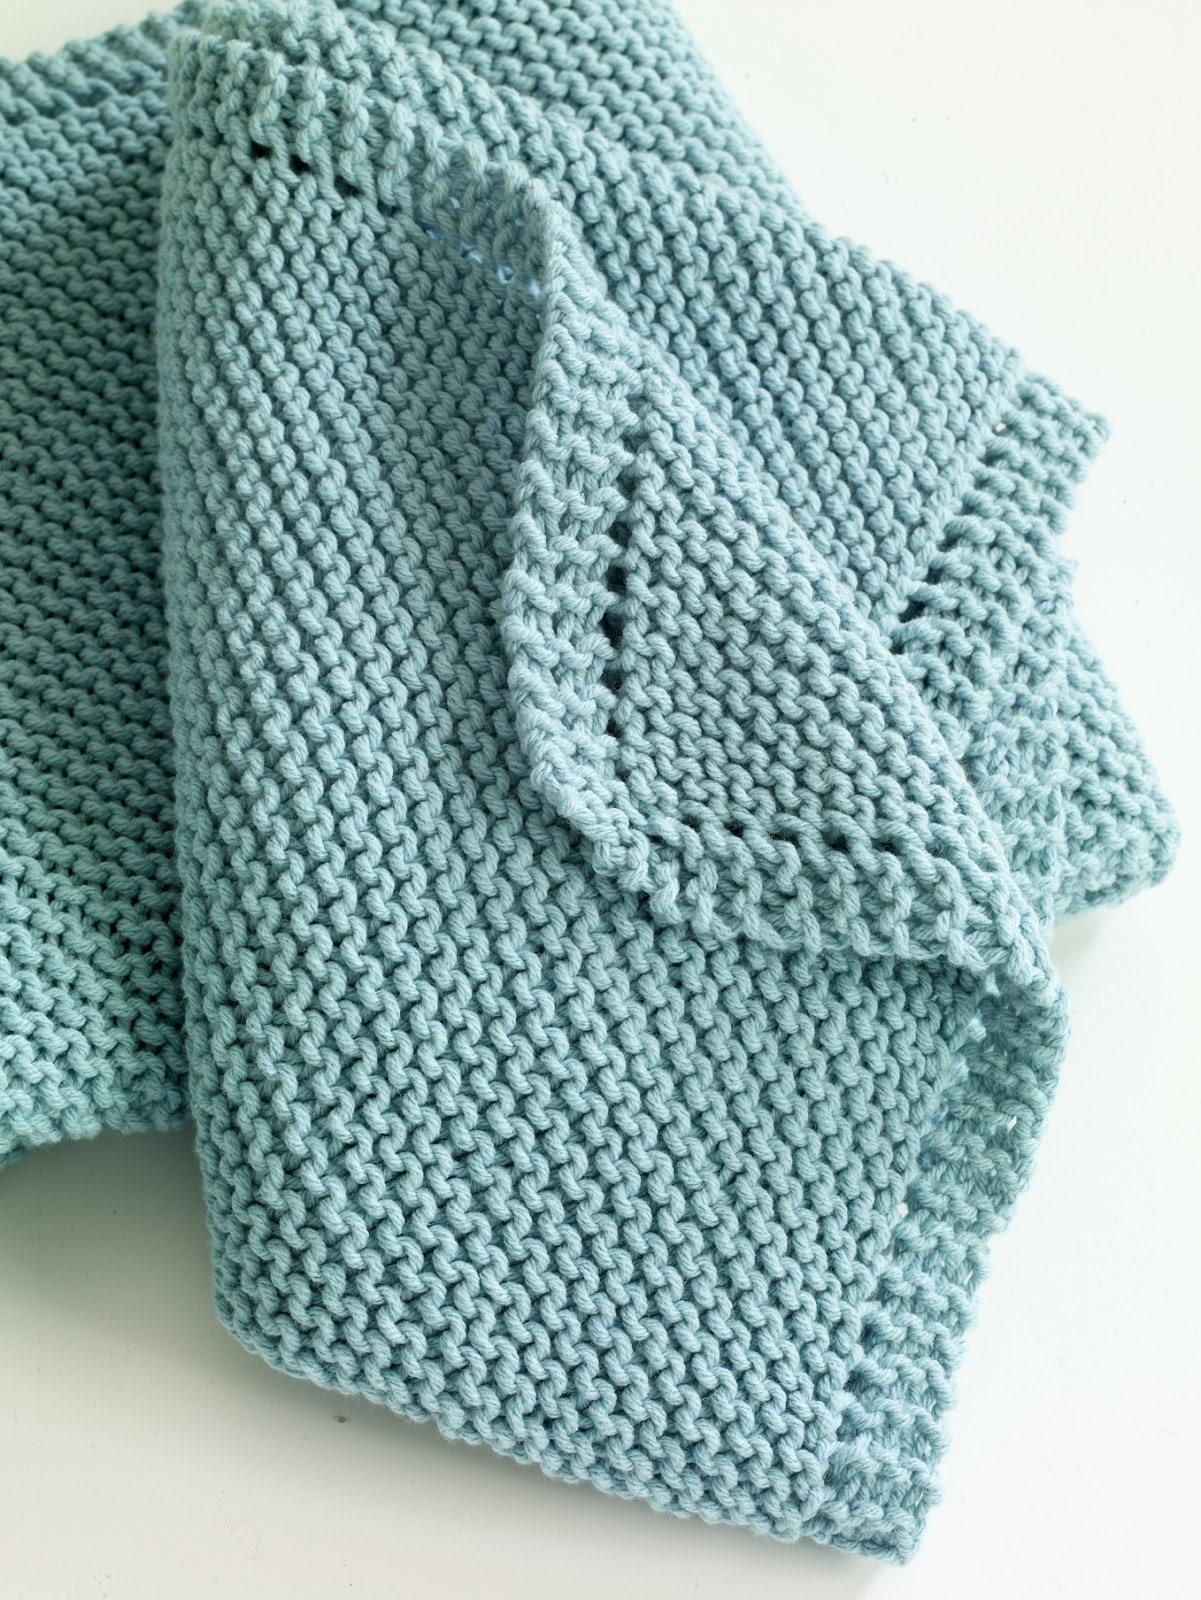 Easy Baby Blanket Patterns Knitting : Serenity Knits